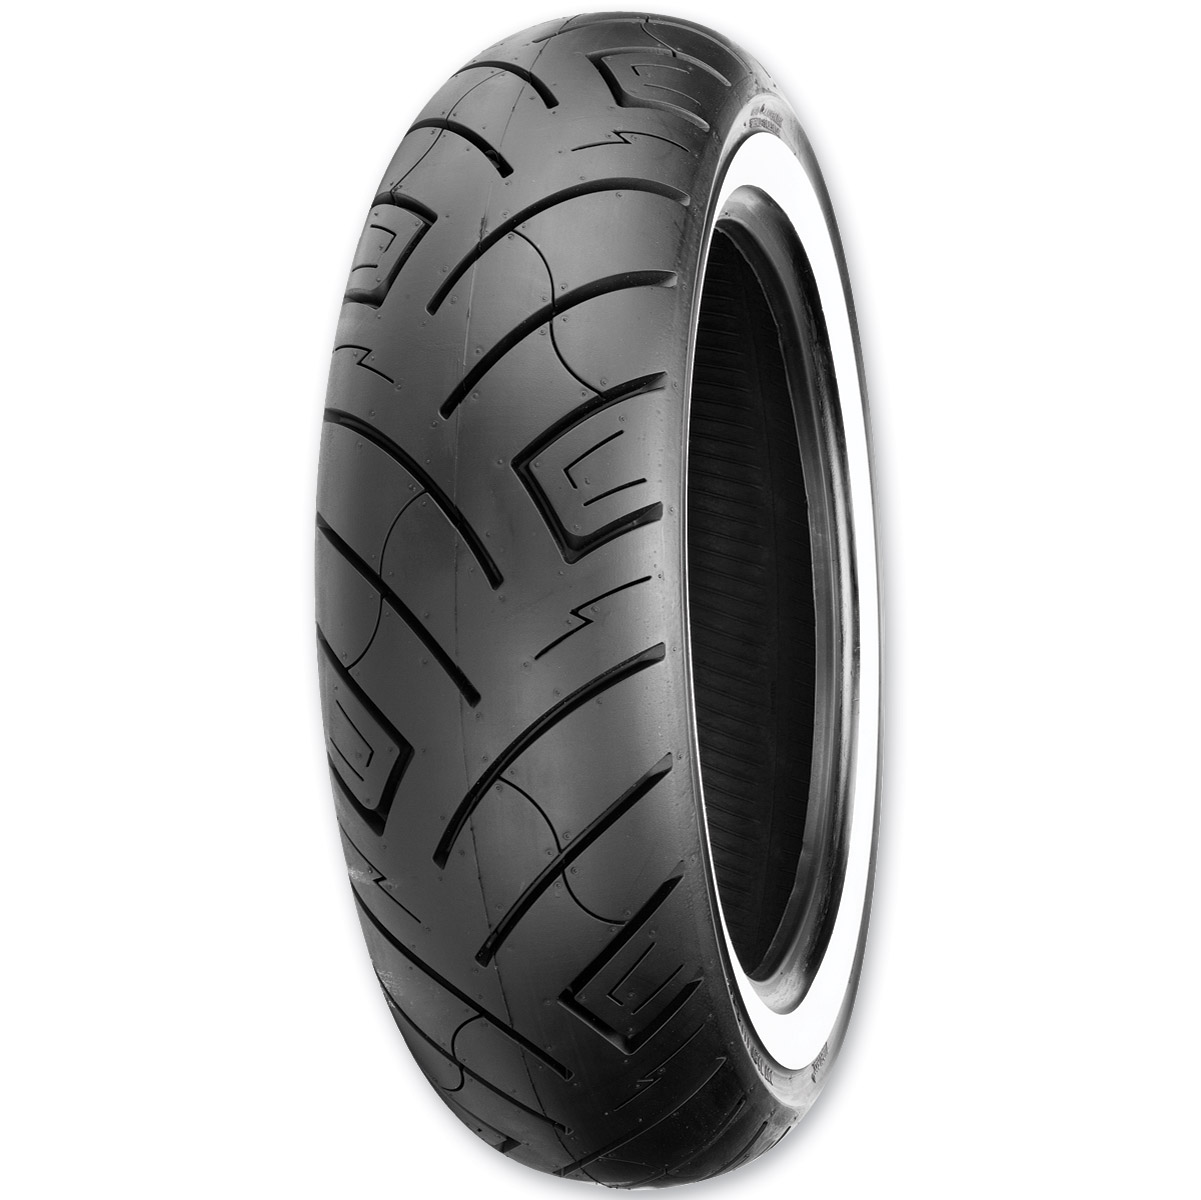 Michelin Whitewall Tires >> Shinko 777 170 70 16 Wide Whitewall Rear Tire 87 4574